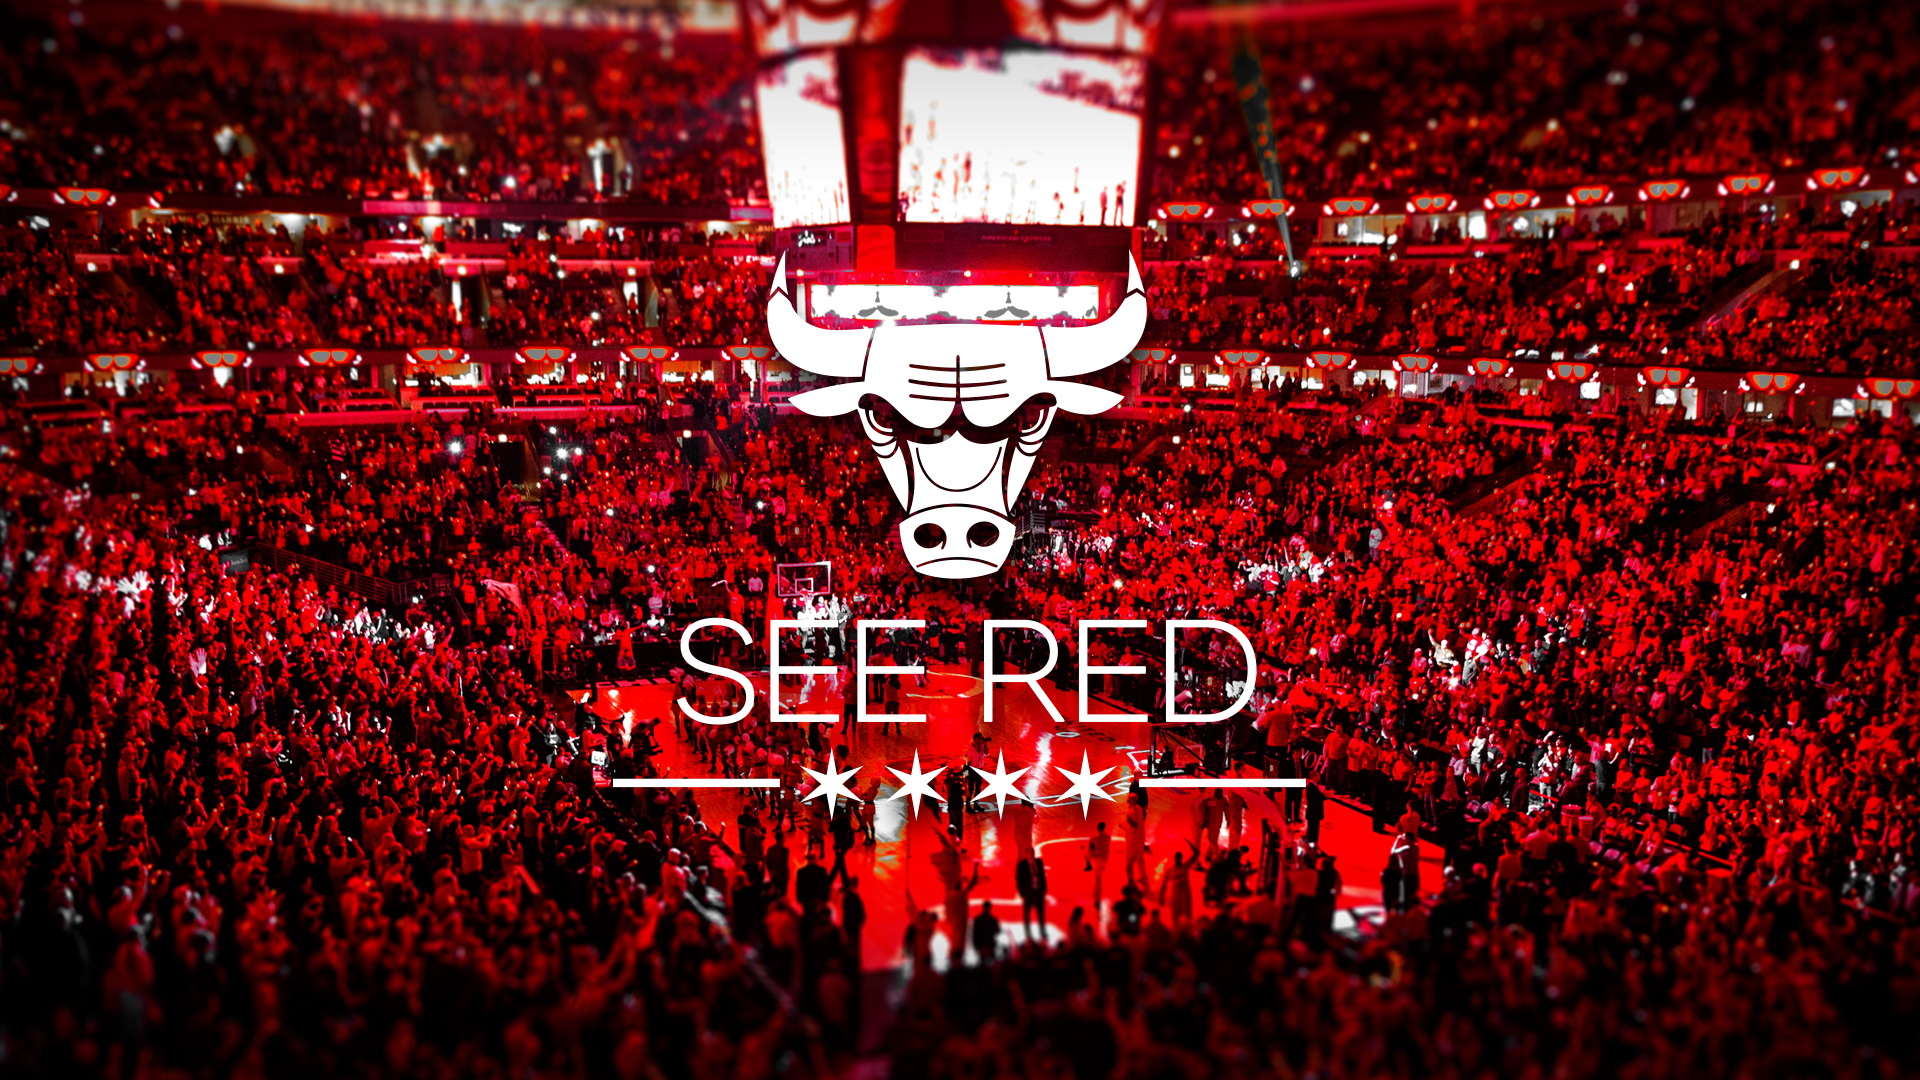 See red chicago bulls playoffs wallpaper for desktop voltagebd Images